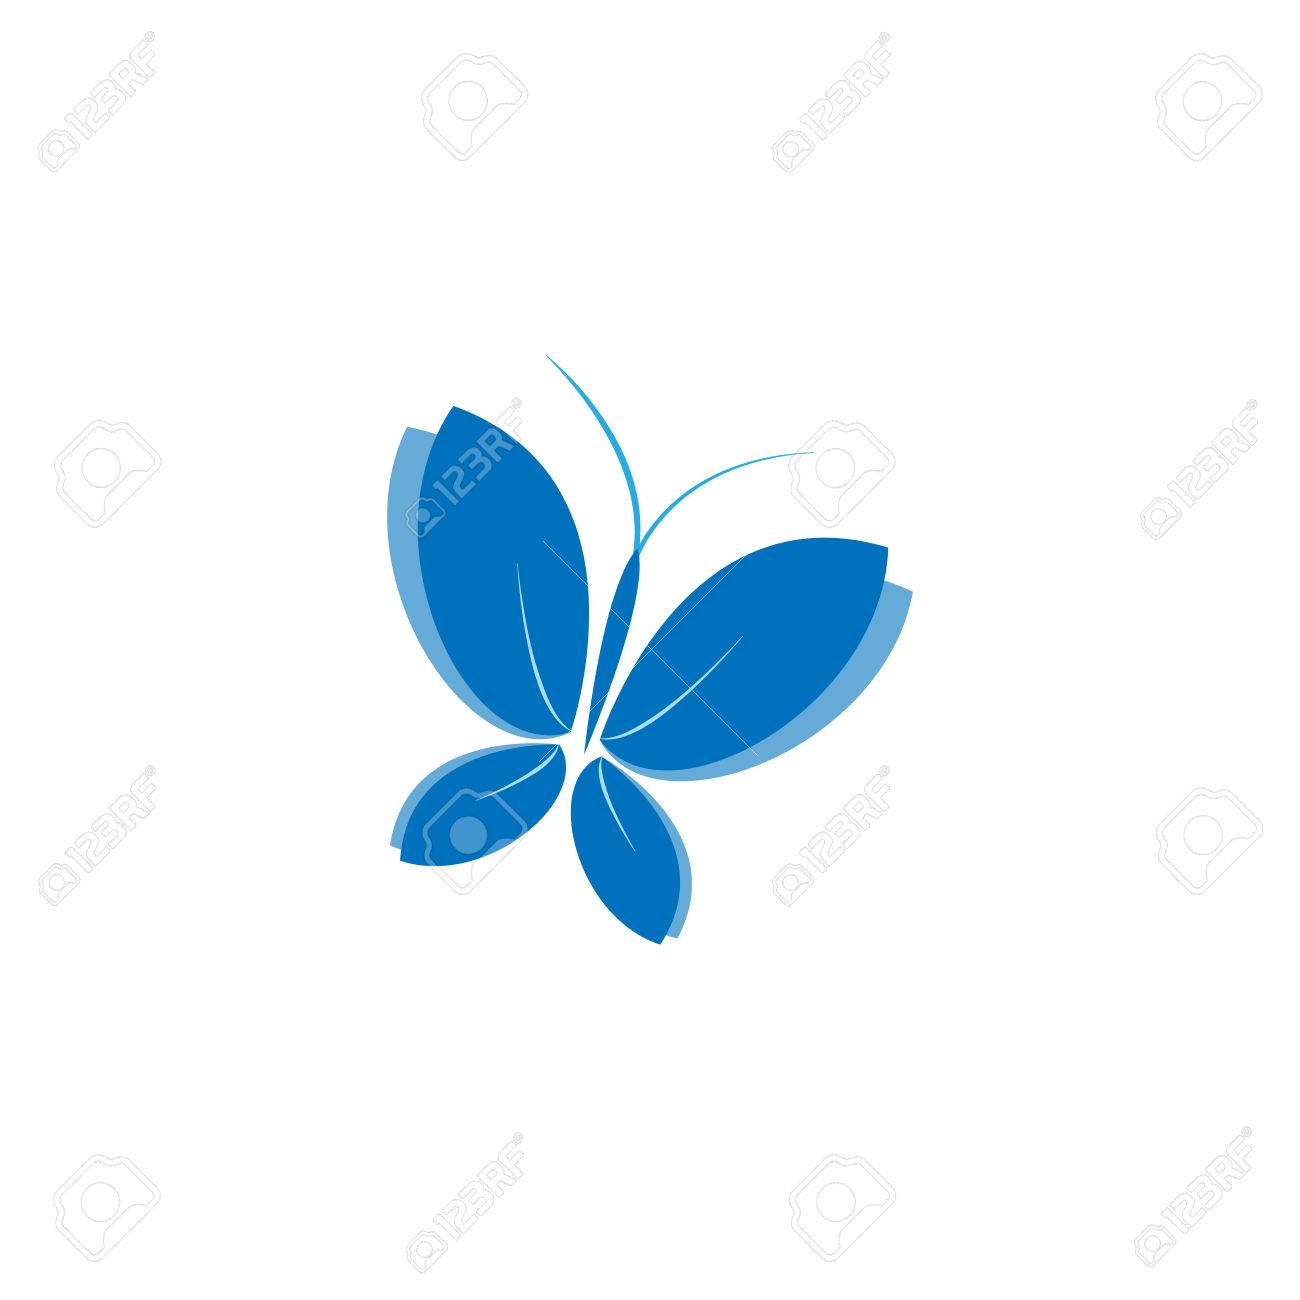 Eco blue icon symbol of a butterfly vector illustration isolated eco blue icon symbol of a butterfly vector illustration isolated on a light background biocorpaavc Images